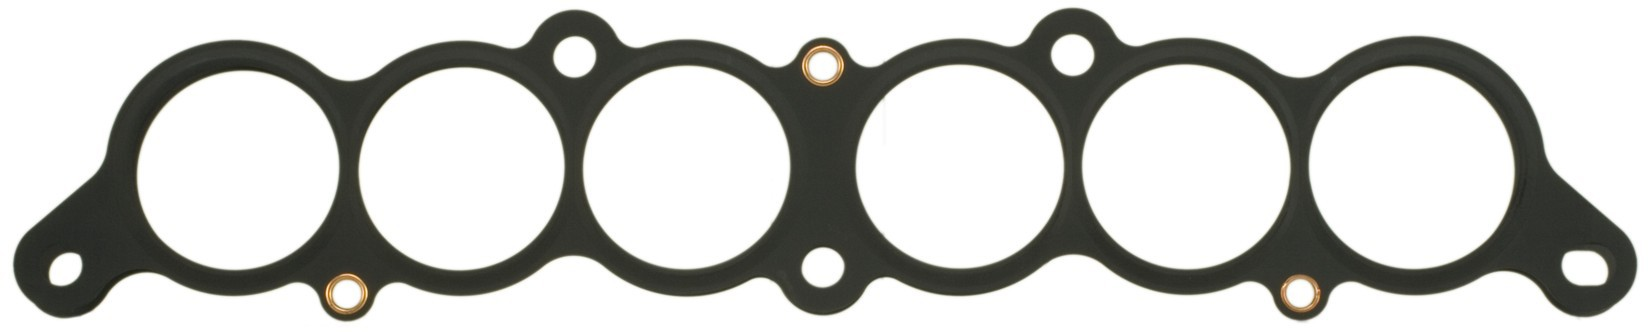 AIRTEX ENG. MGMT. SYSTEMS - Fuel Injection Plenum Gasket - AEM 1G1278